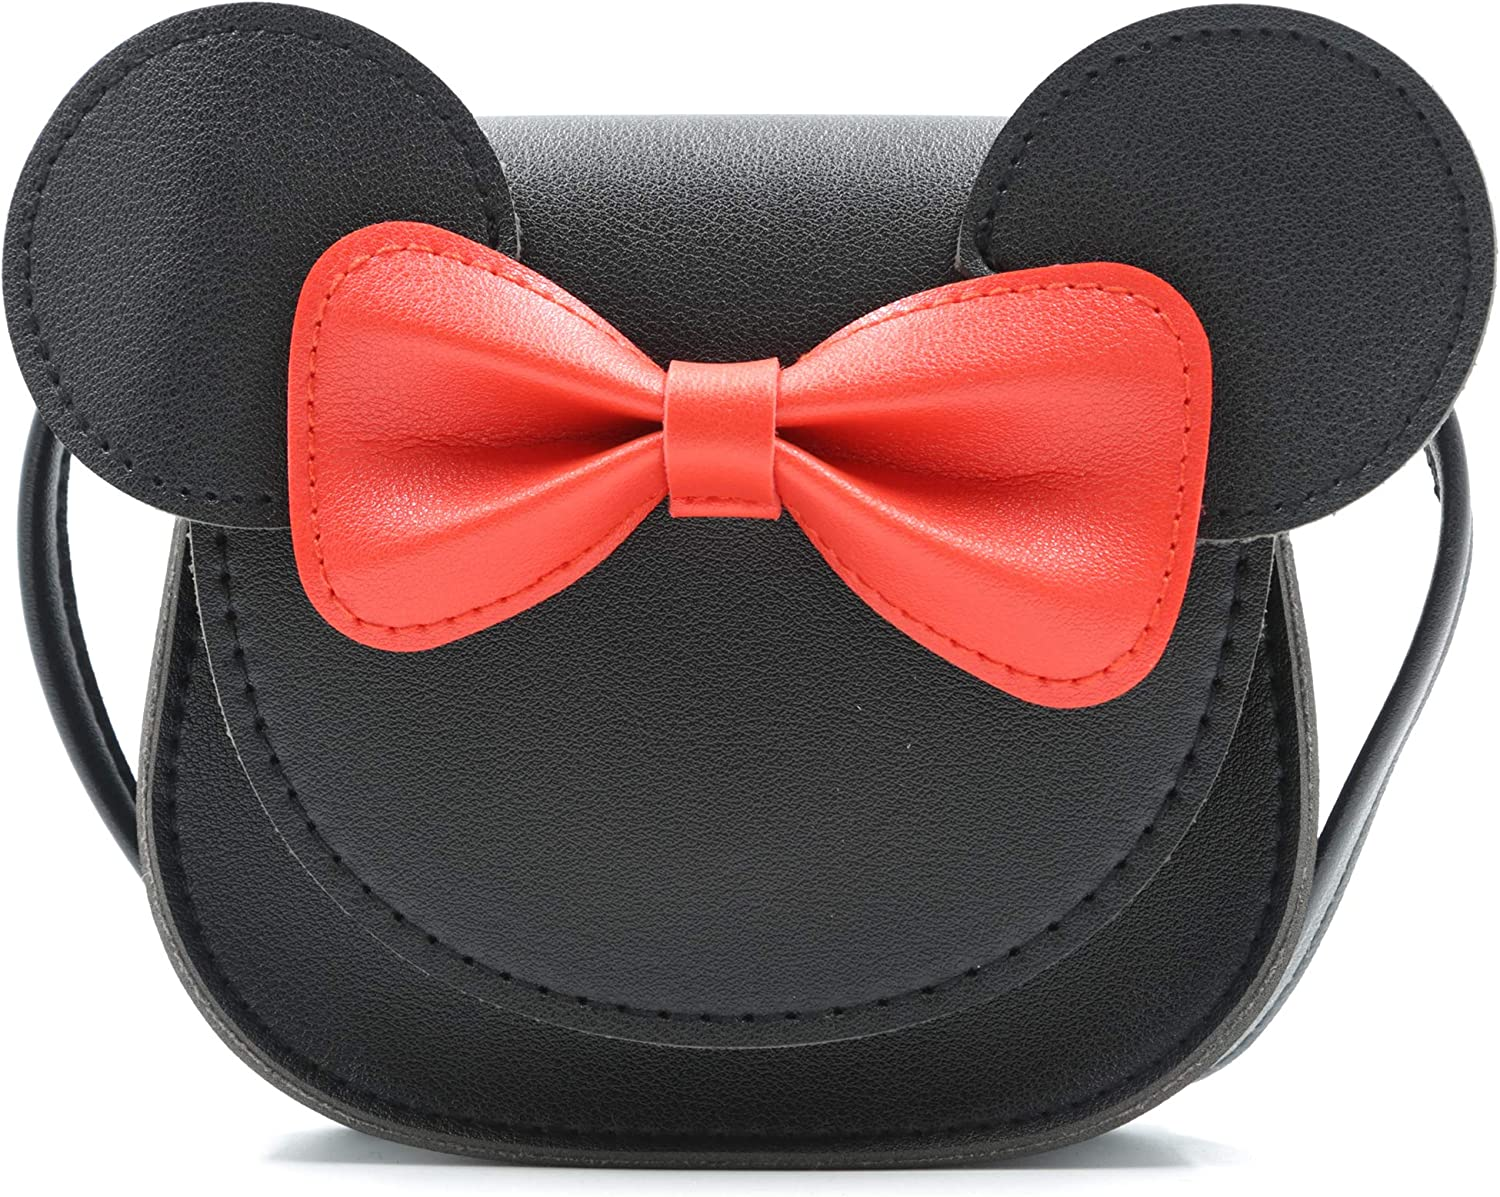 HXQ Little Mouse Ear Bow Crossbody Purse,PU Shoulder Handbag for Kids Girls Toddlers